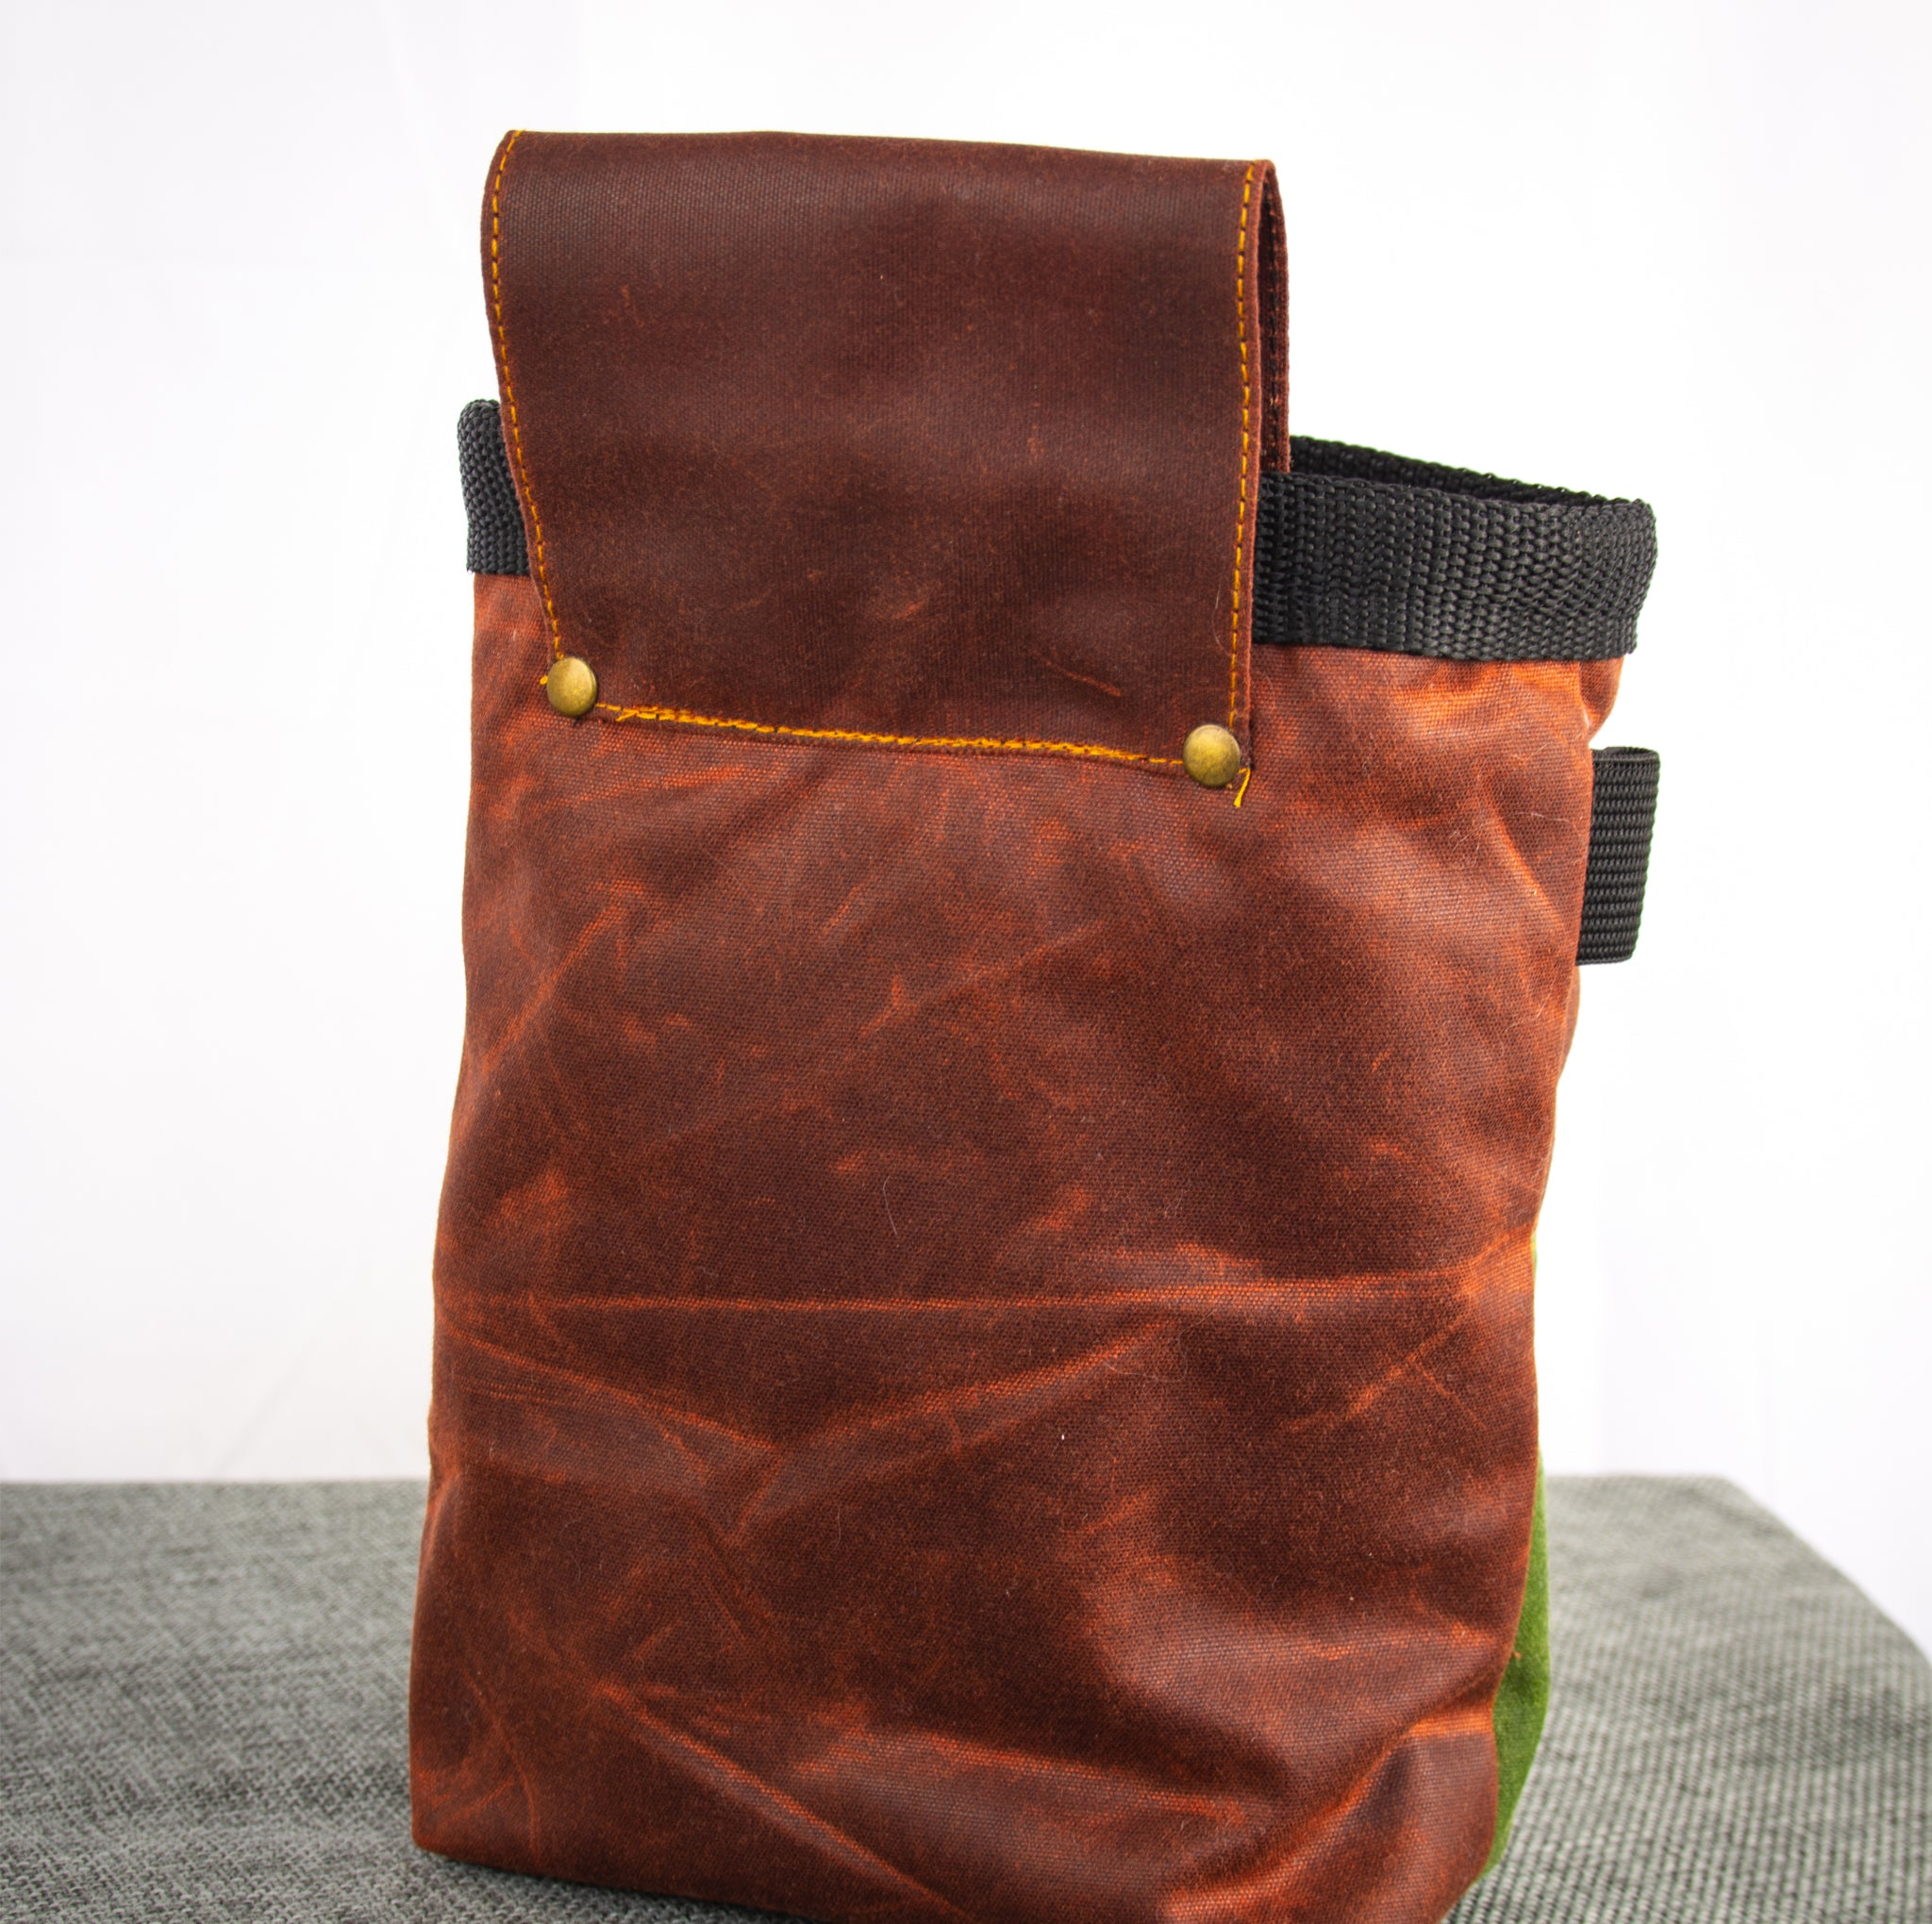 Fiadhaich Waxed Canvas Chalk Bag - Rust/Green